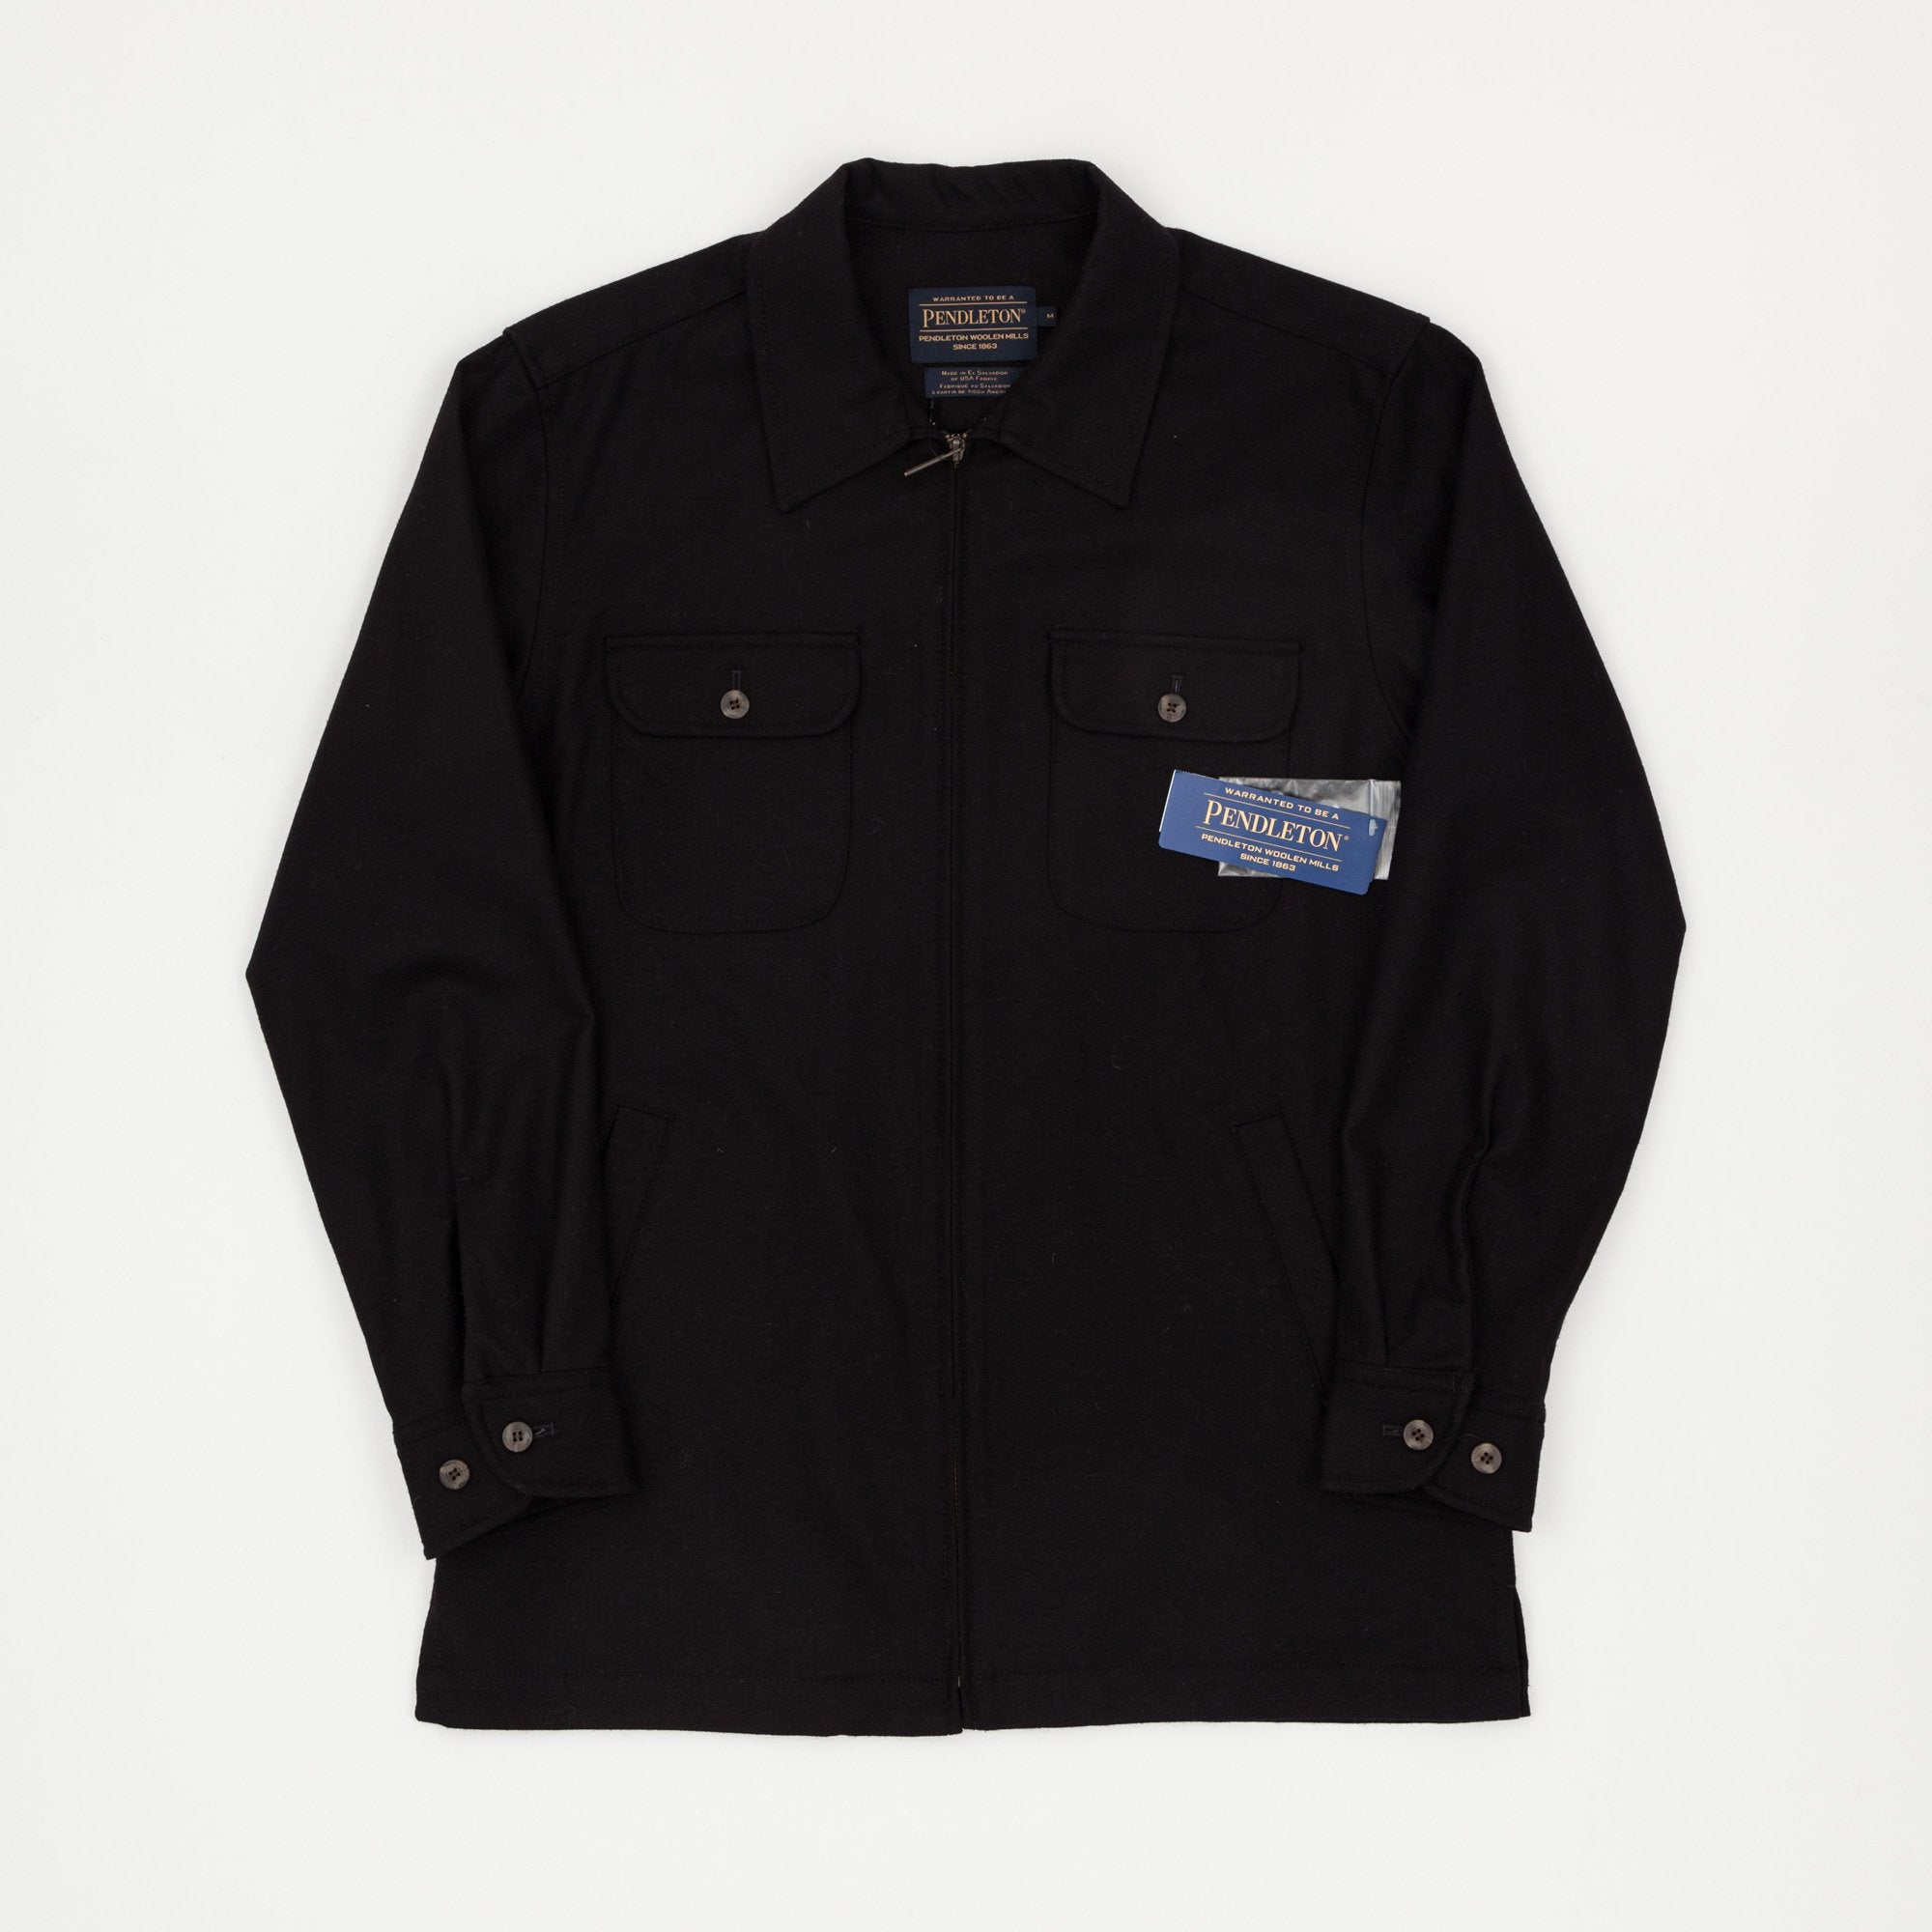 Pendleton Wool Full Zip Overshirt